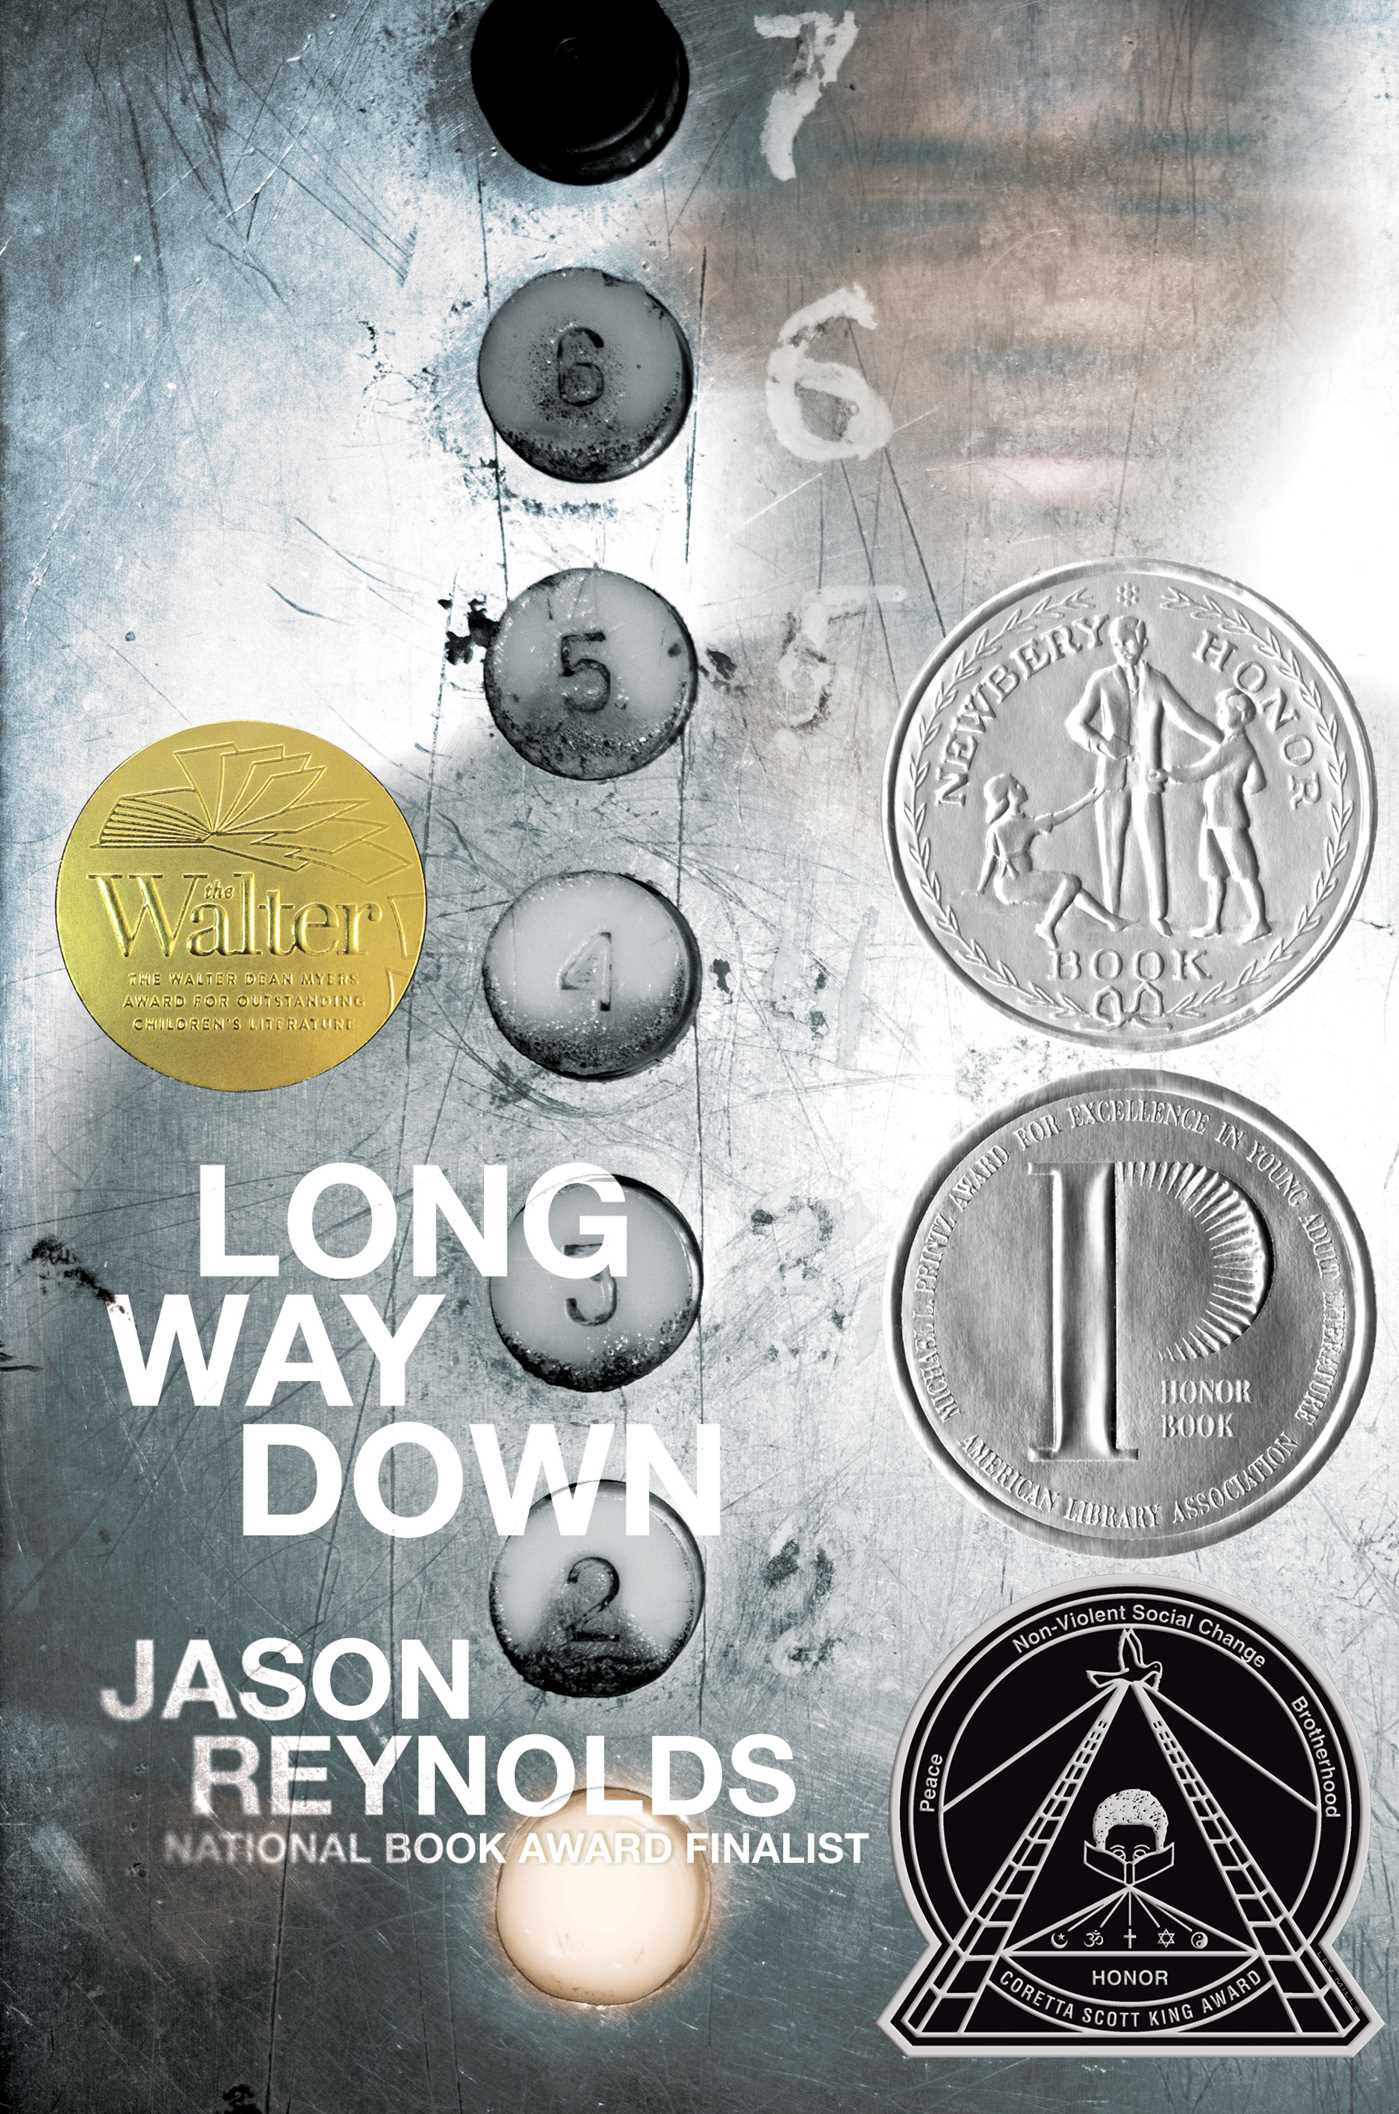 Afbeeldingsresultaat voor long way down jason reynolds